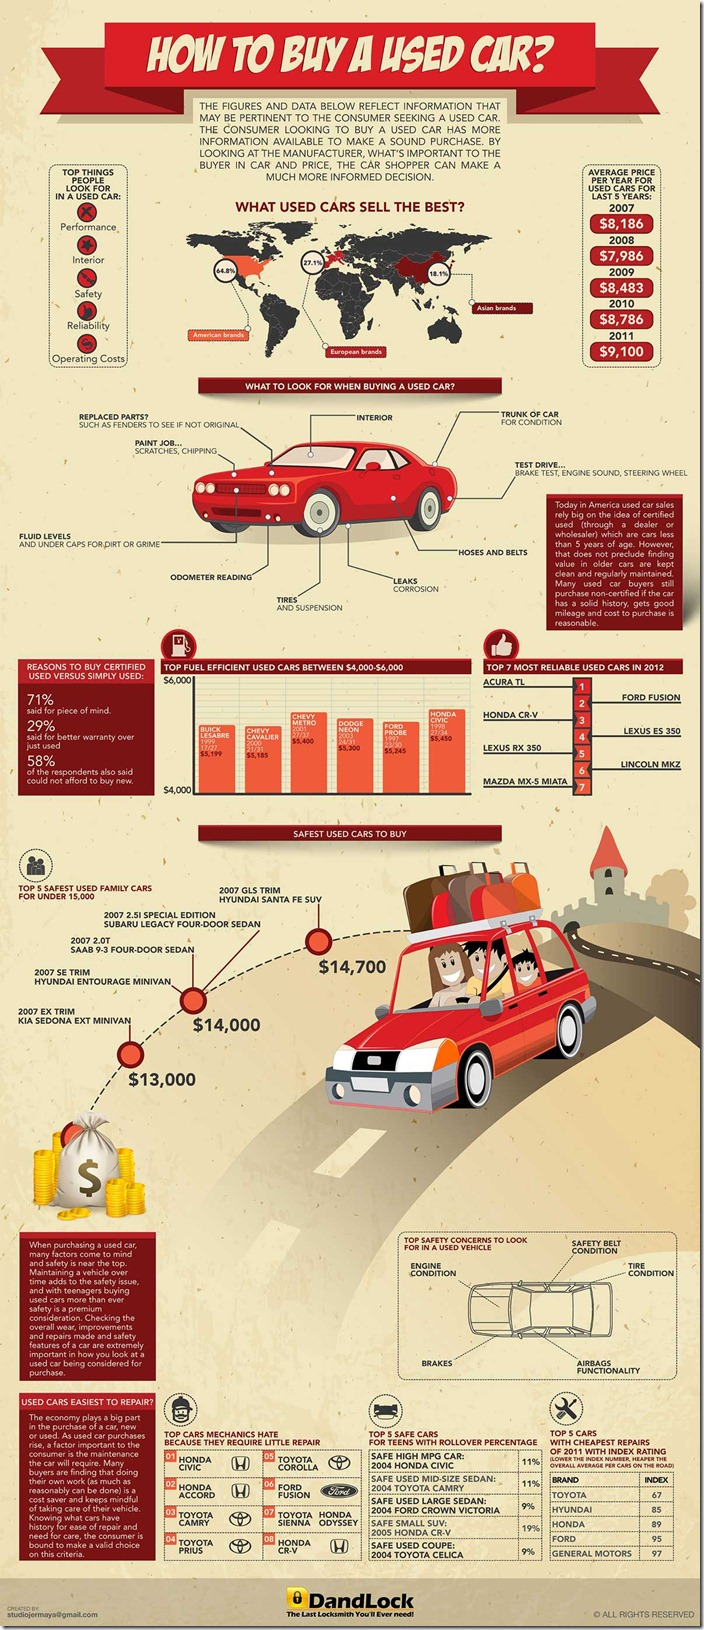 HOW_TO_BUY_AUSED_CAR_FINAL1